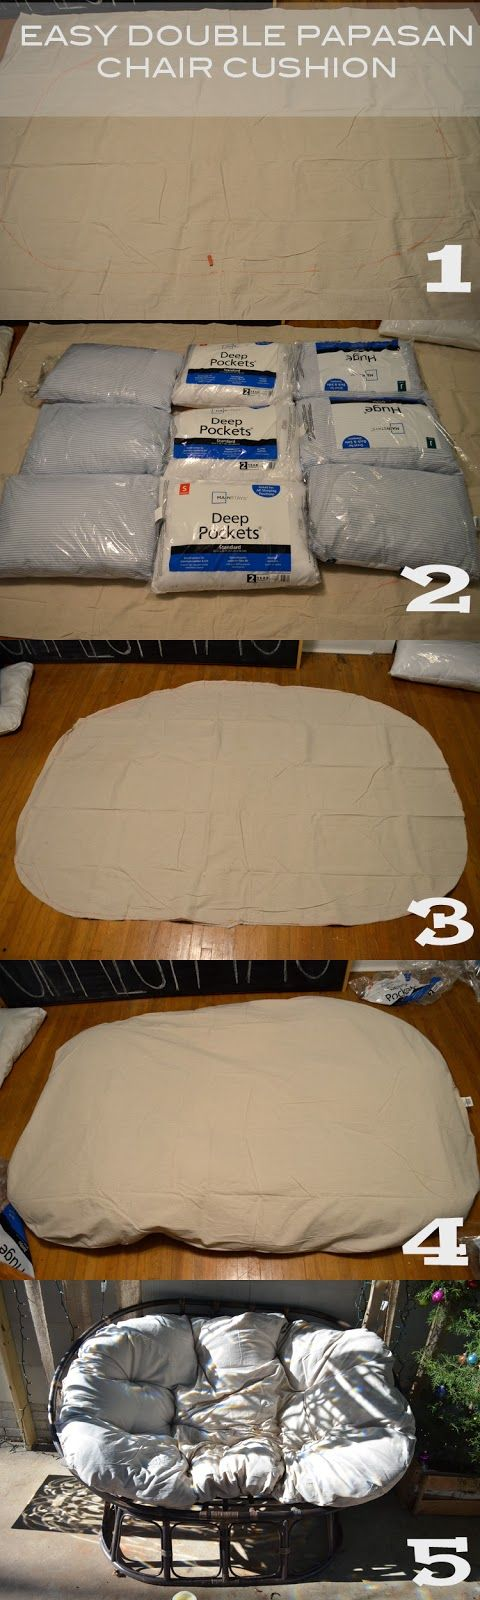 Double Papasan Chair Cushion Tutorial